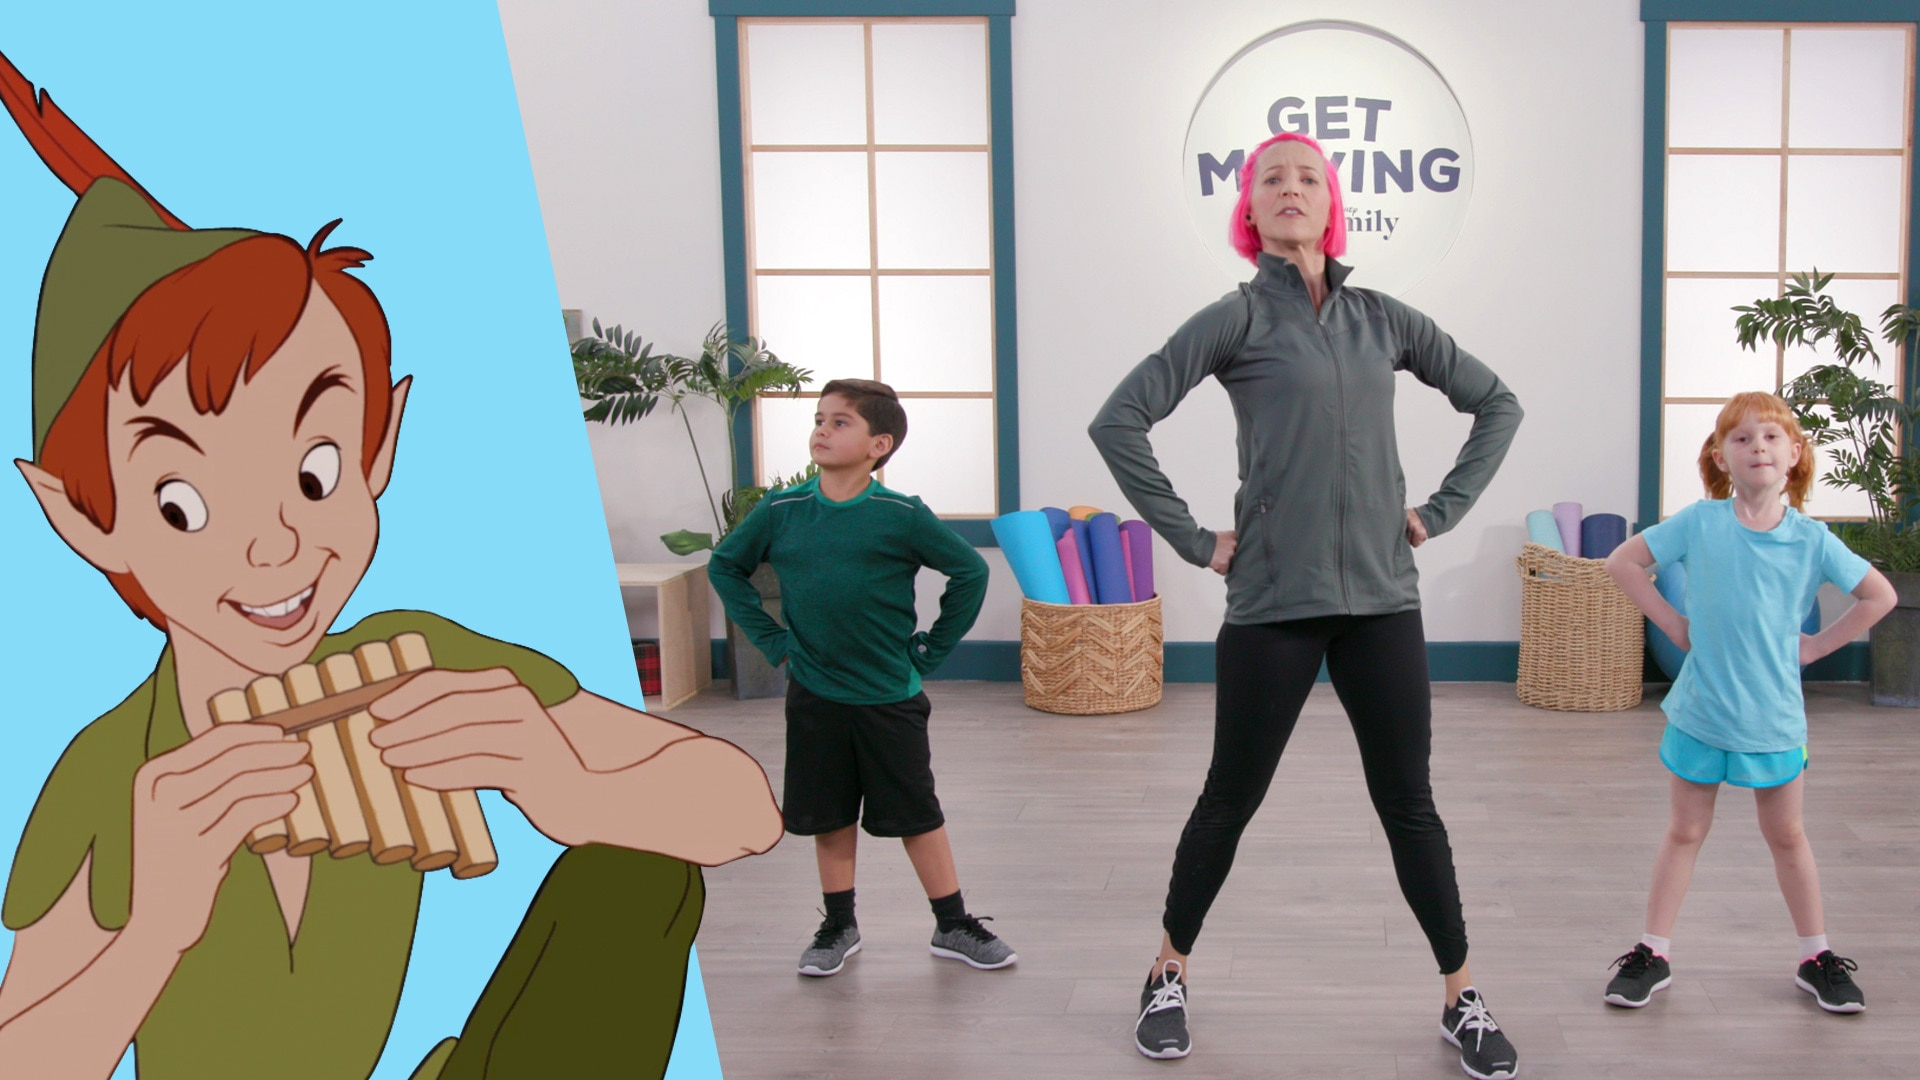 Peter Pan | Get Moving With Disney Family by Disney Family